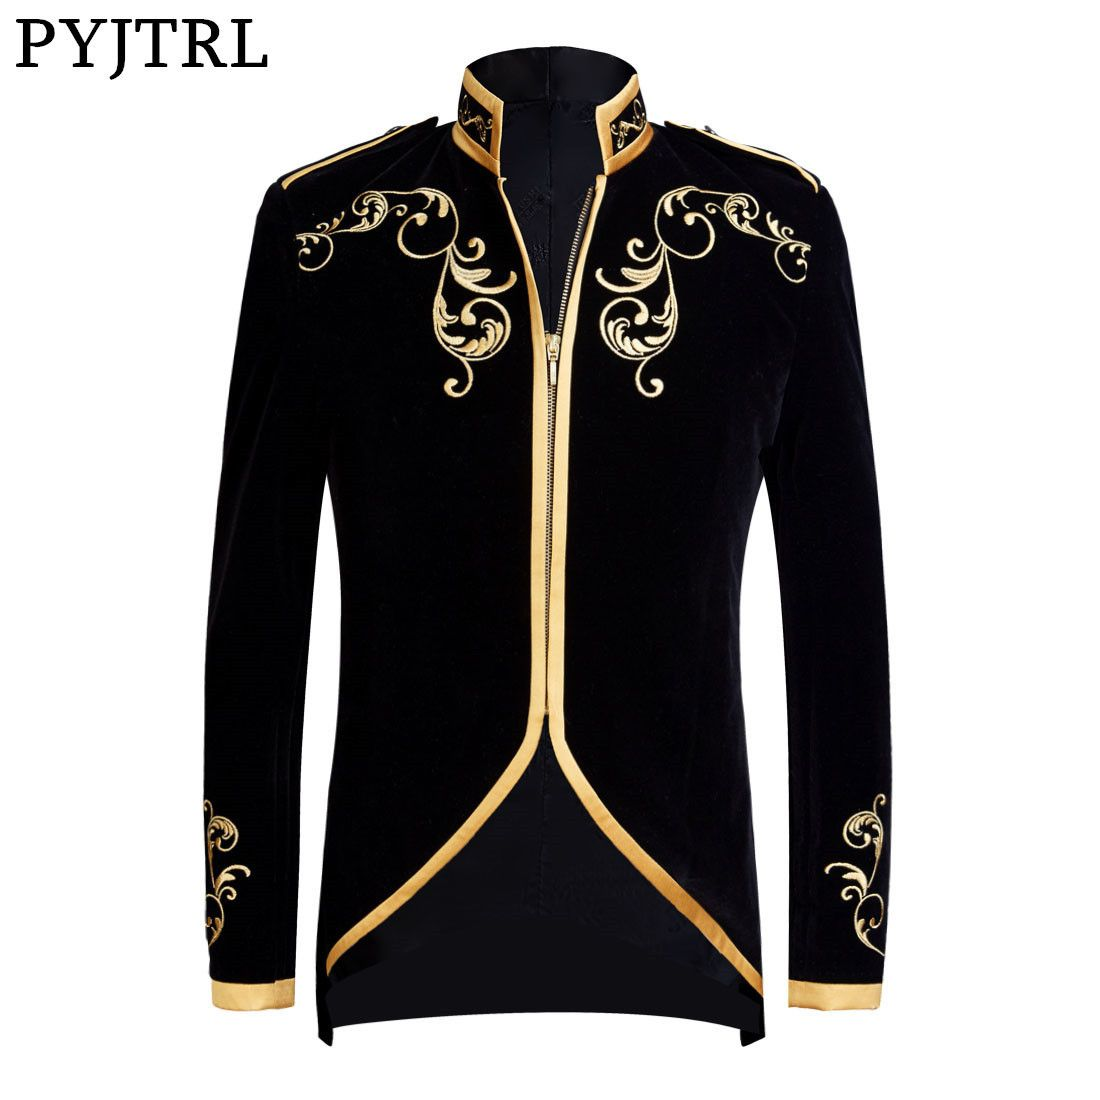 PYJTRL British Style Palace Prince Fashion Black Velvet Gold Embroidery Blazer Wedding Groom Slim Fit Suit Jacket Singers Coat